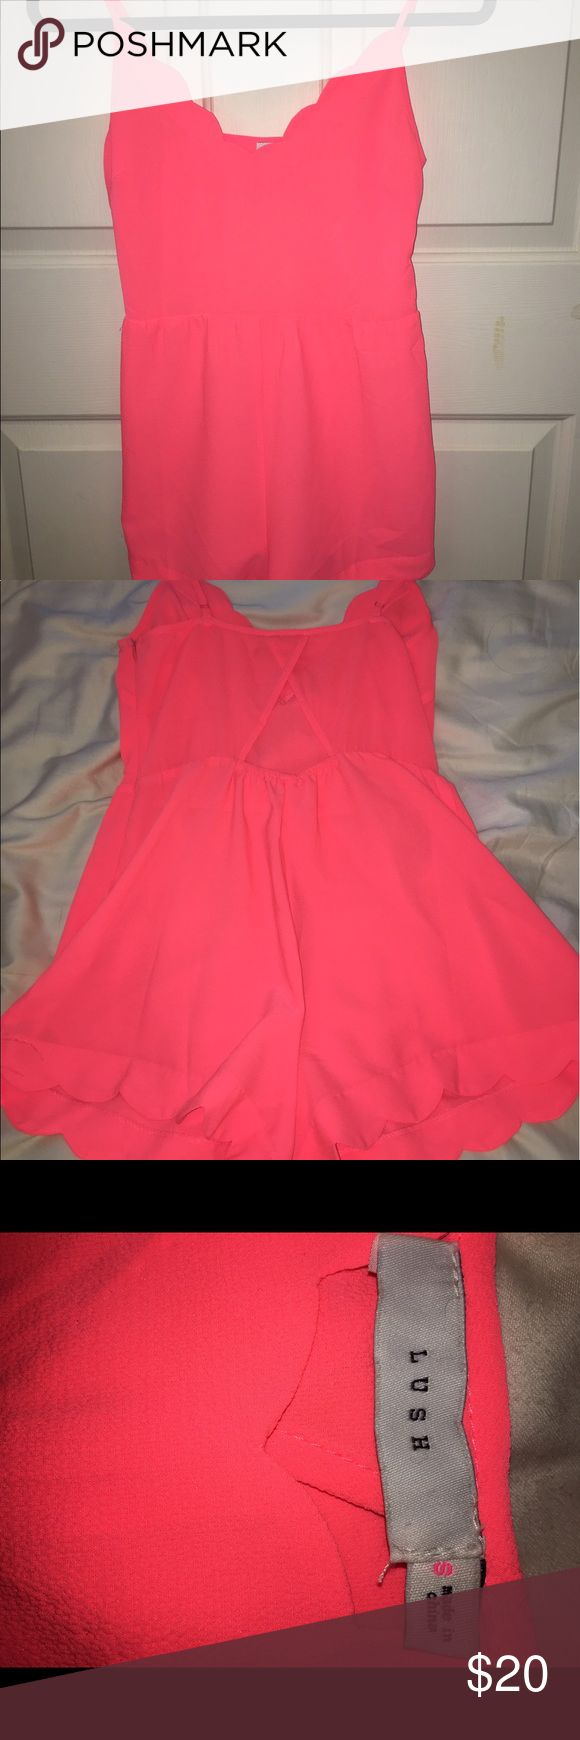 Red Dress Boutique romper Neon pink romper from Red Dress Boutique. Super cute and fun for summer. From the brand Lush. Worn Once. Has a bit of a crisscross in the back. Lush Dresses